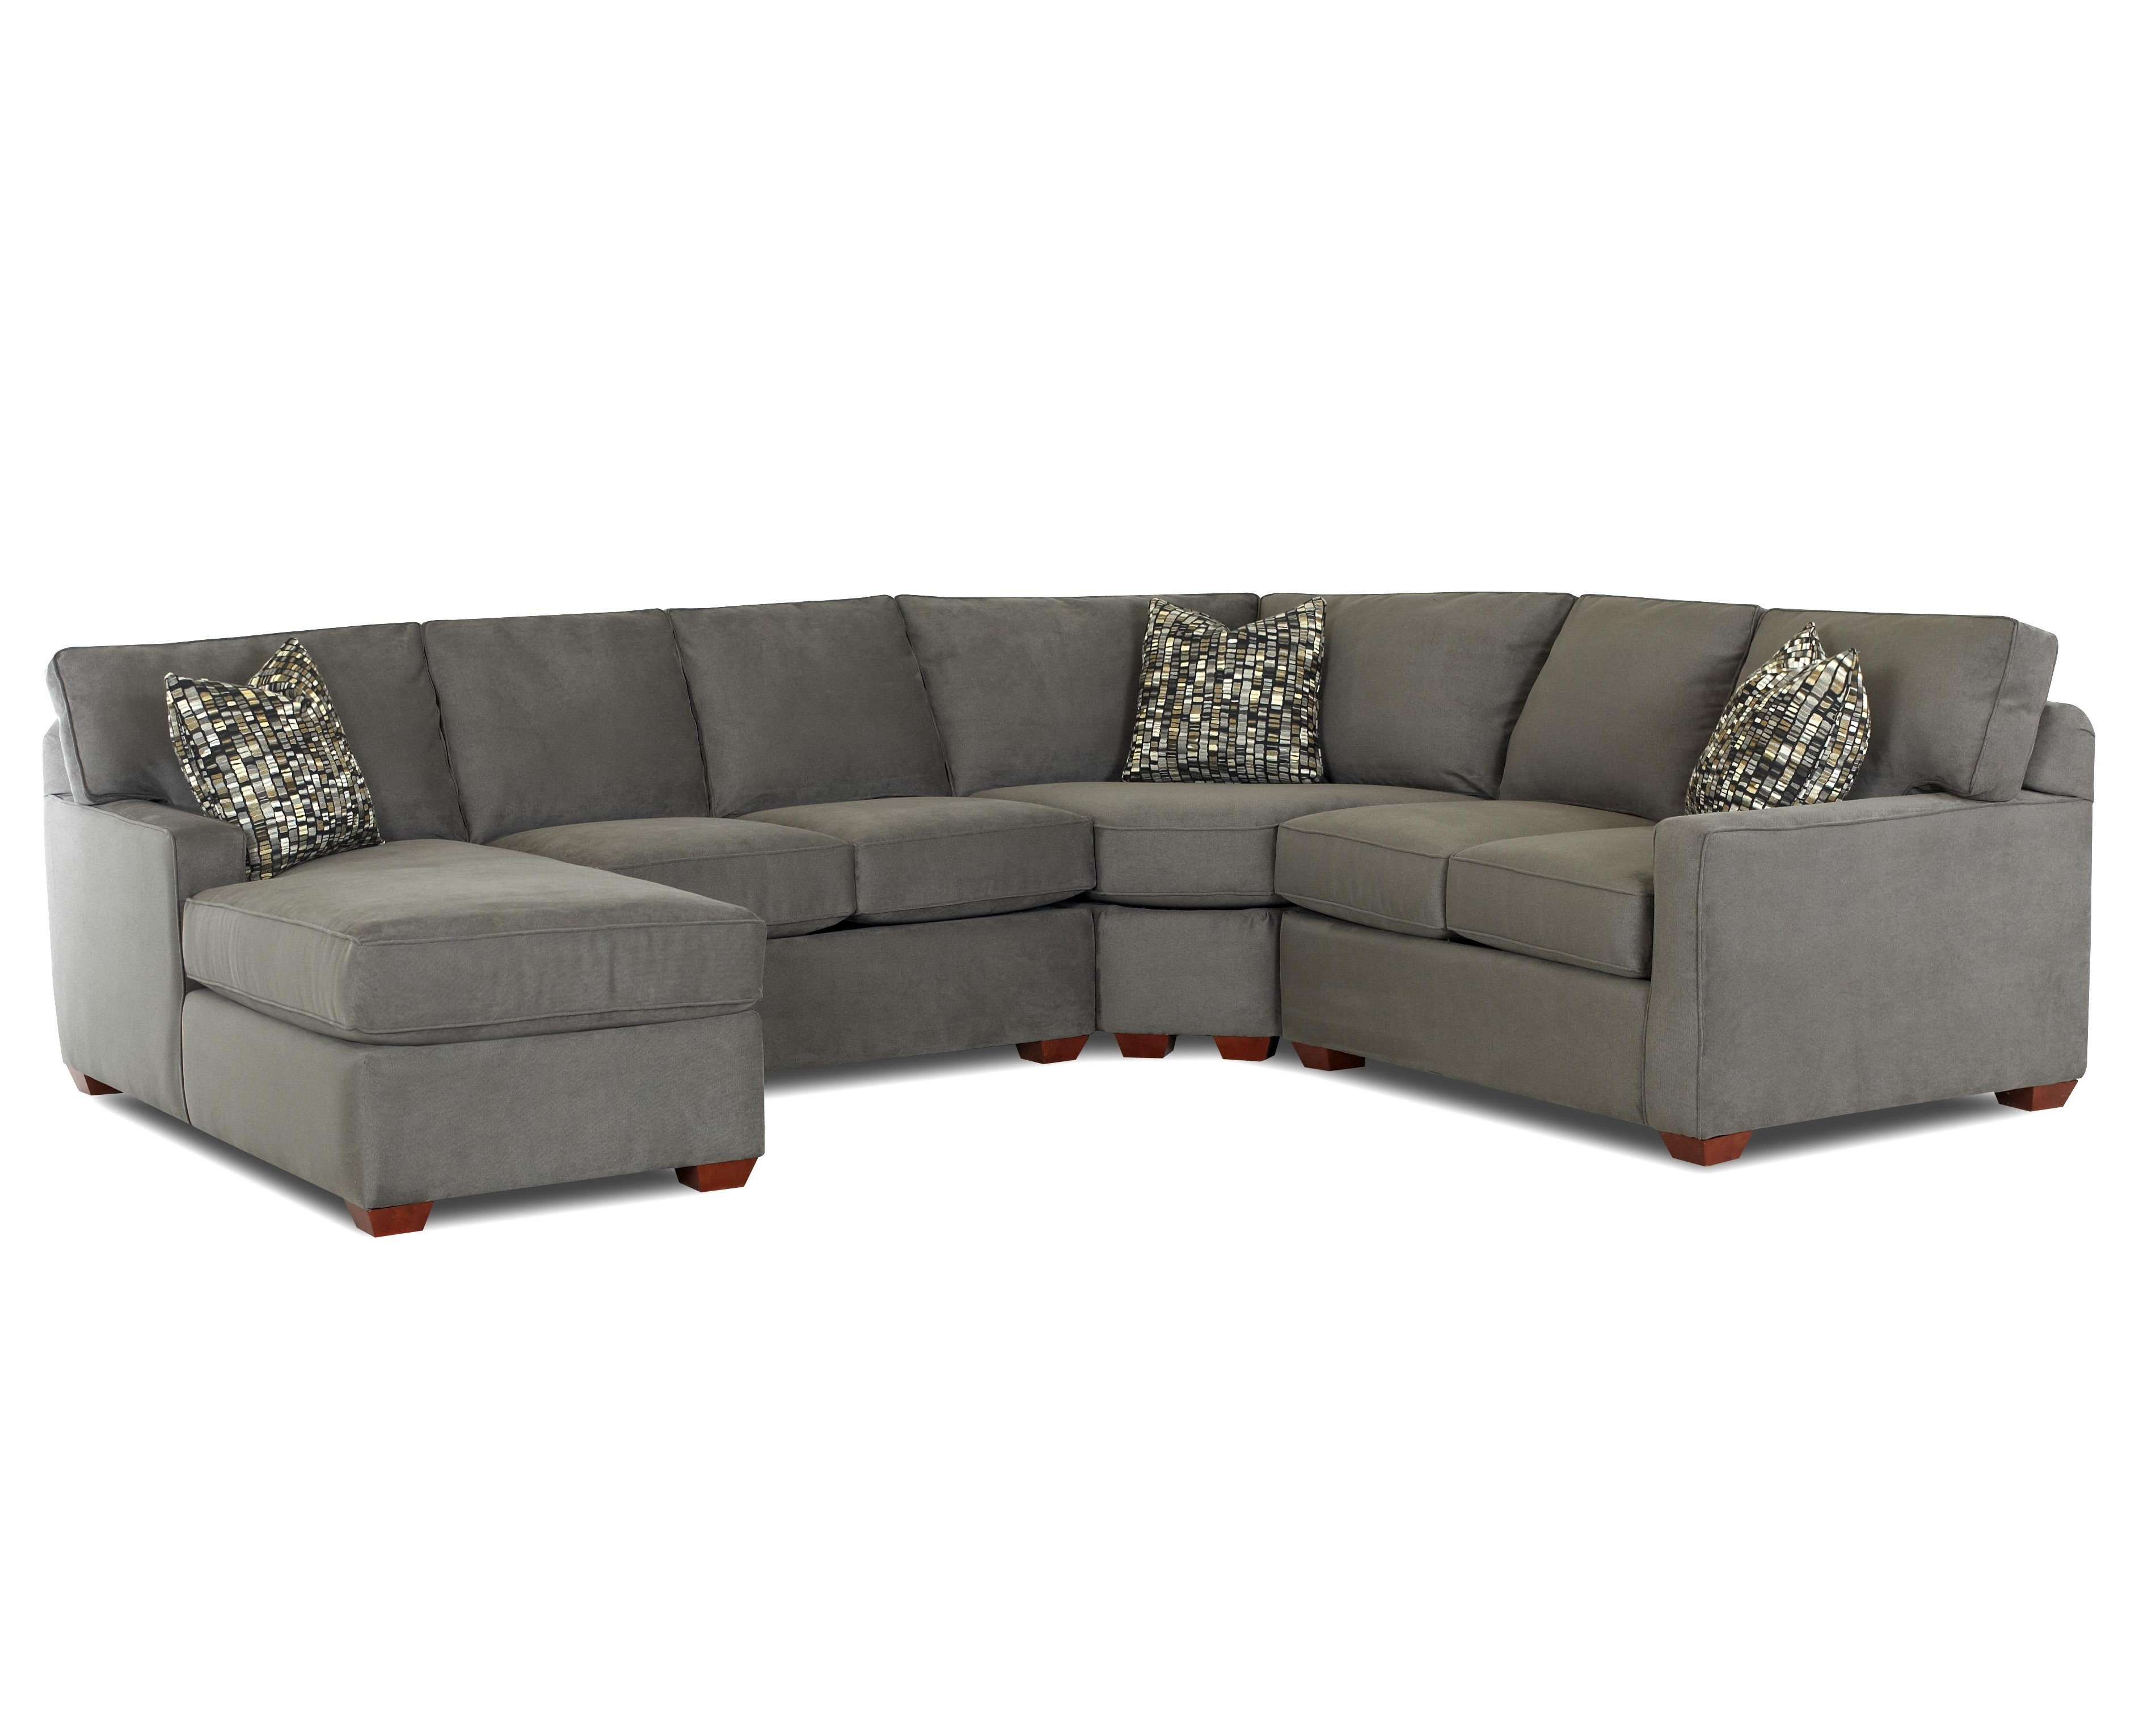 Gray Sectional Sofas With Chaise Regarding 2018 Contemporary L Shaped Sectional Sofa With Right Arm Facing Chaise (View 12 of 15)